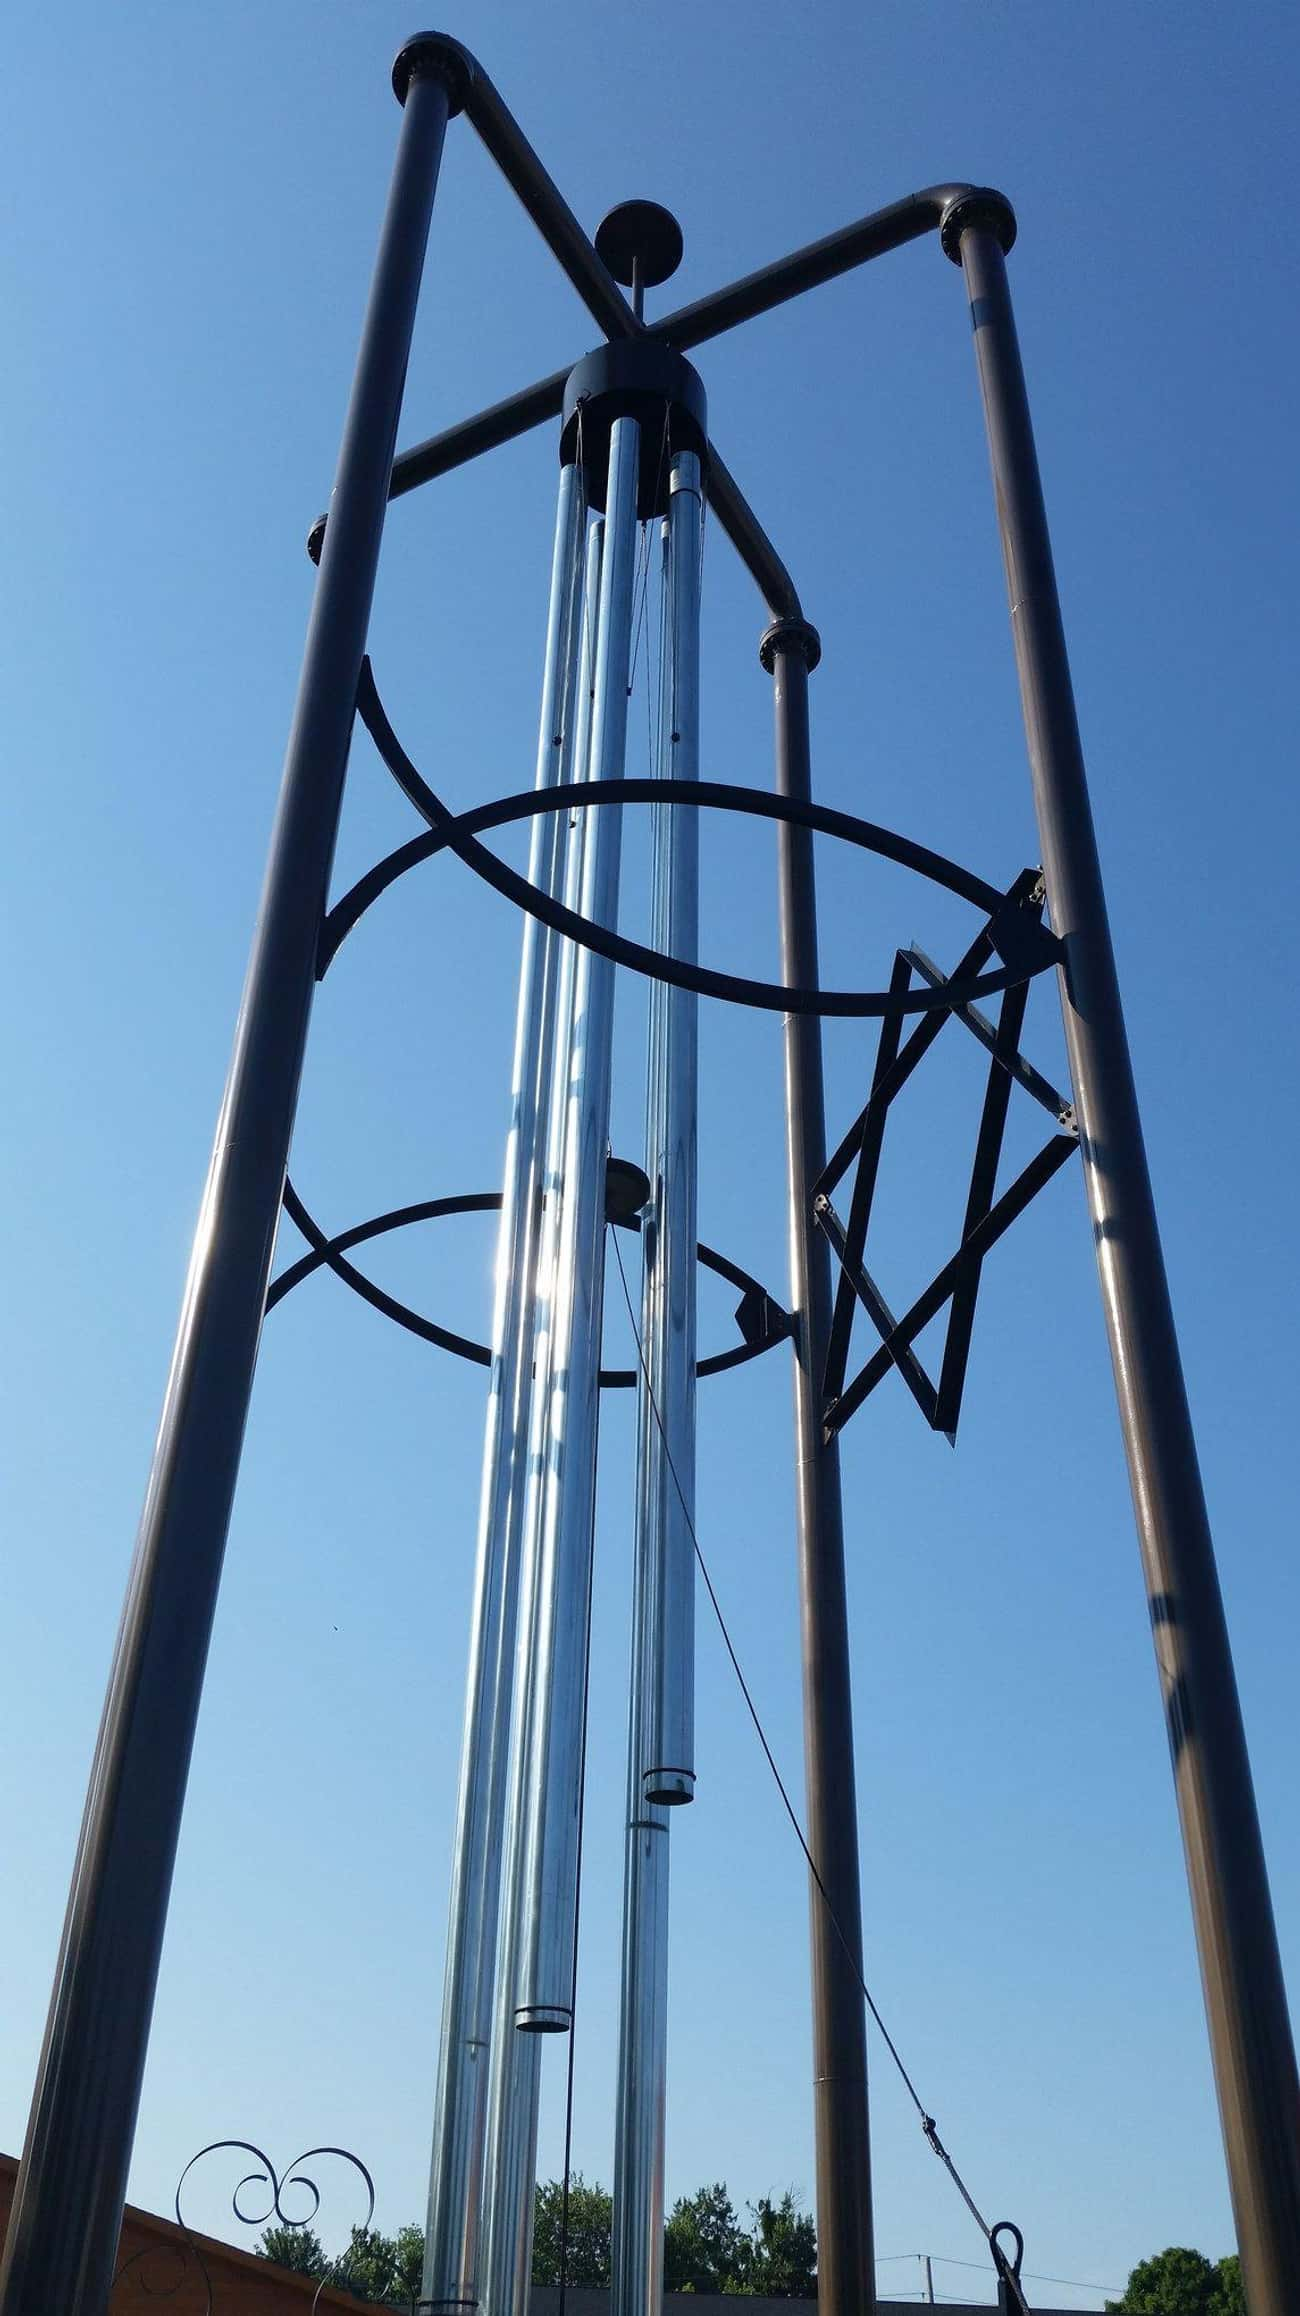 World's Largest Wind Chime is listed (or ranked) 4 on the list The Most Pointlessly Large Roadside Attractions in the U.S.